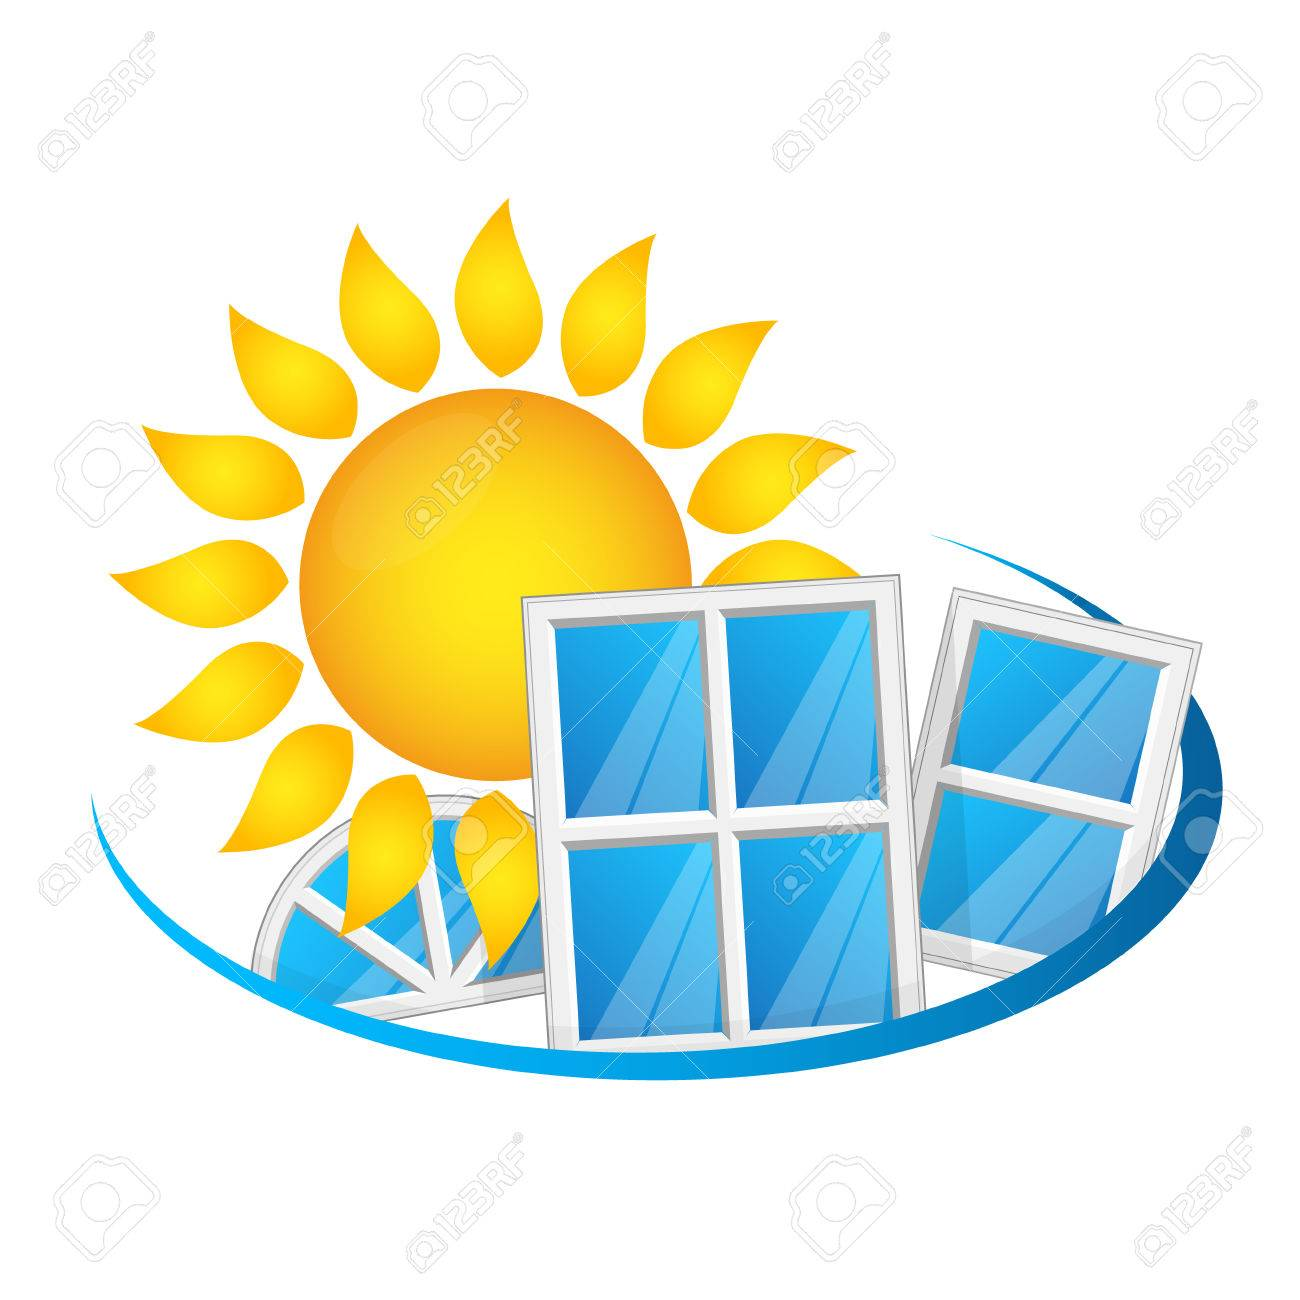 The Sun And The Windows That Conserve The Heat Symbol Royalty Free